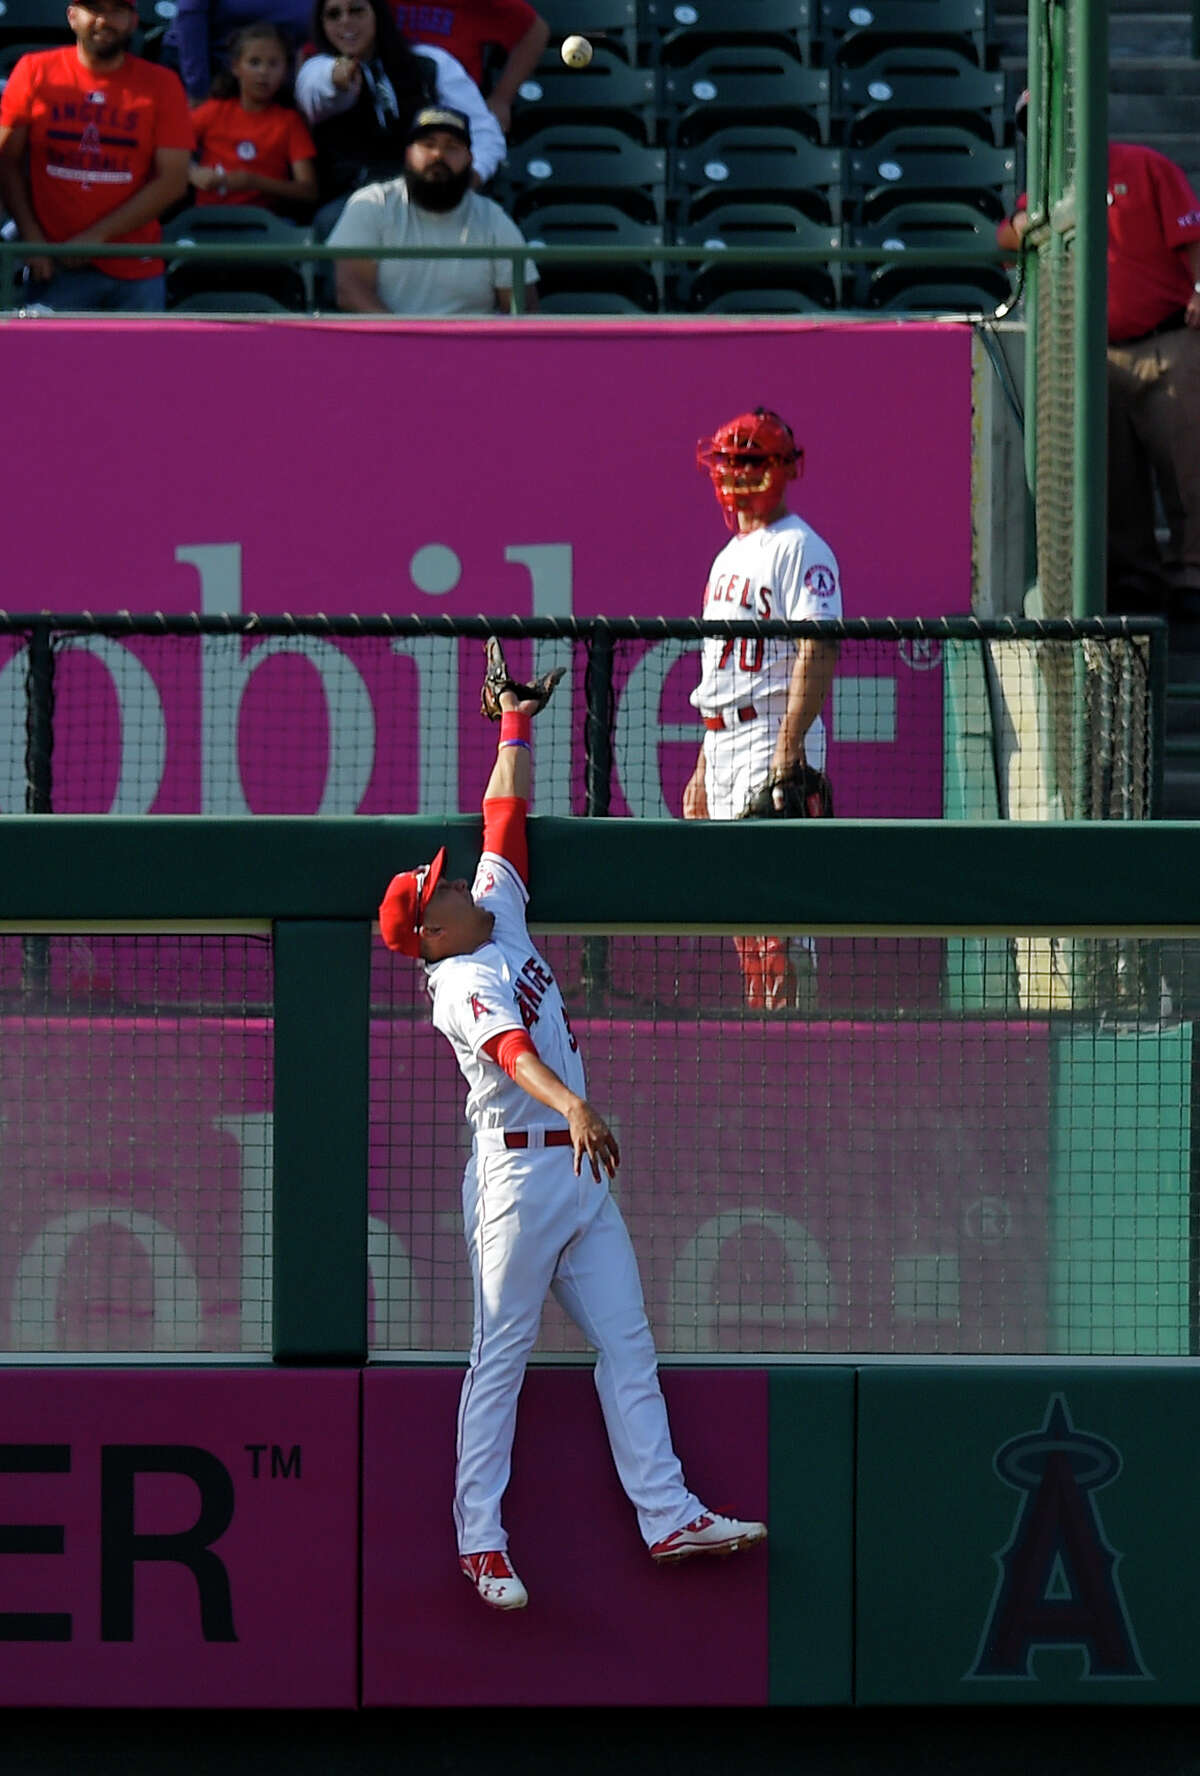 Los Angeles Angels left fielder Rafael Ortega can't reach a ball hit for a three-run home run by Houston Astros' Carlos Correa during the 13th inning of a baseball game, Sunday, May 29, 2016, in Anaheim, Calif. (AP Photo/Mark J. Terrill)